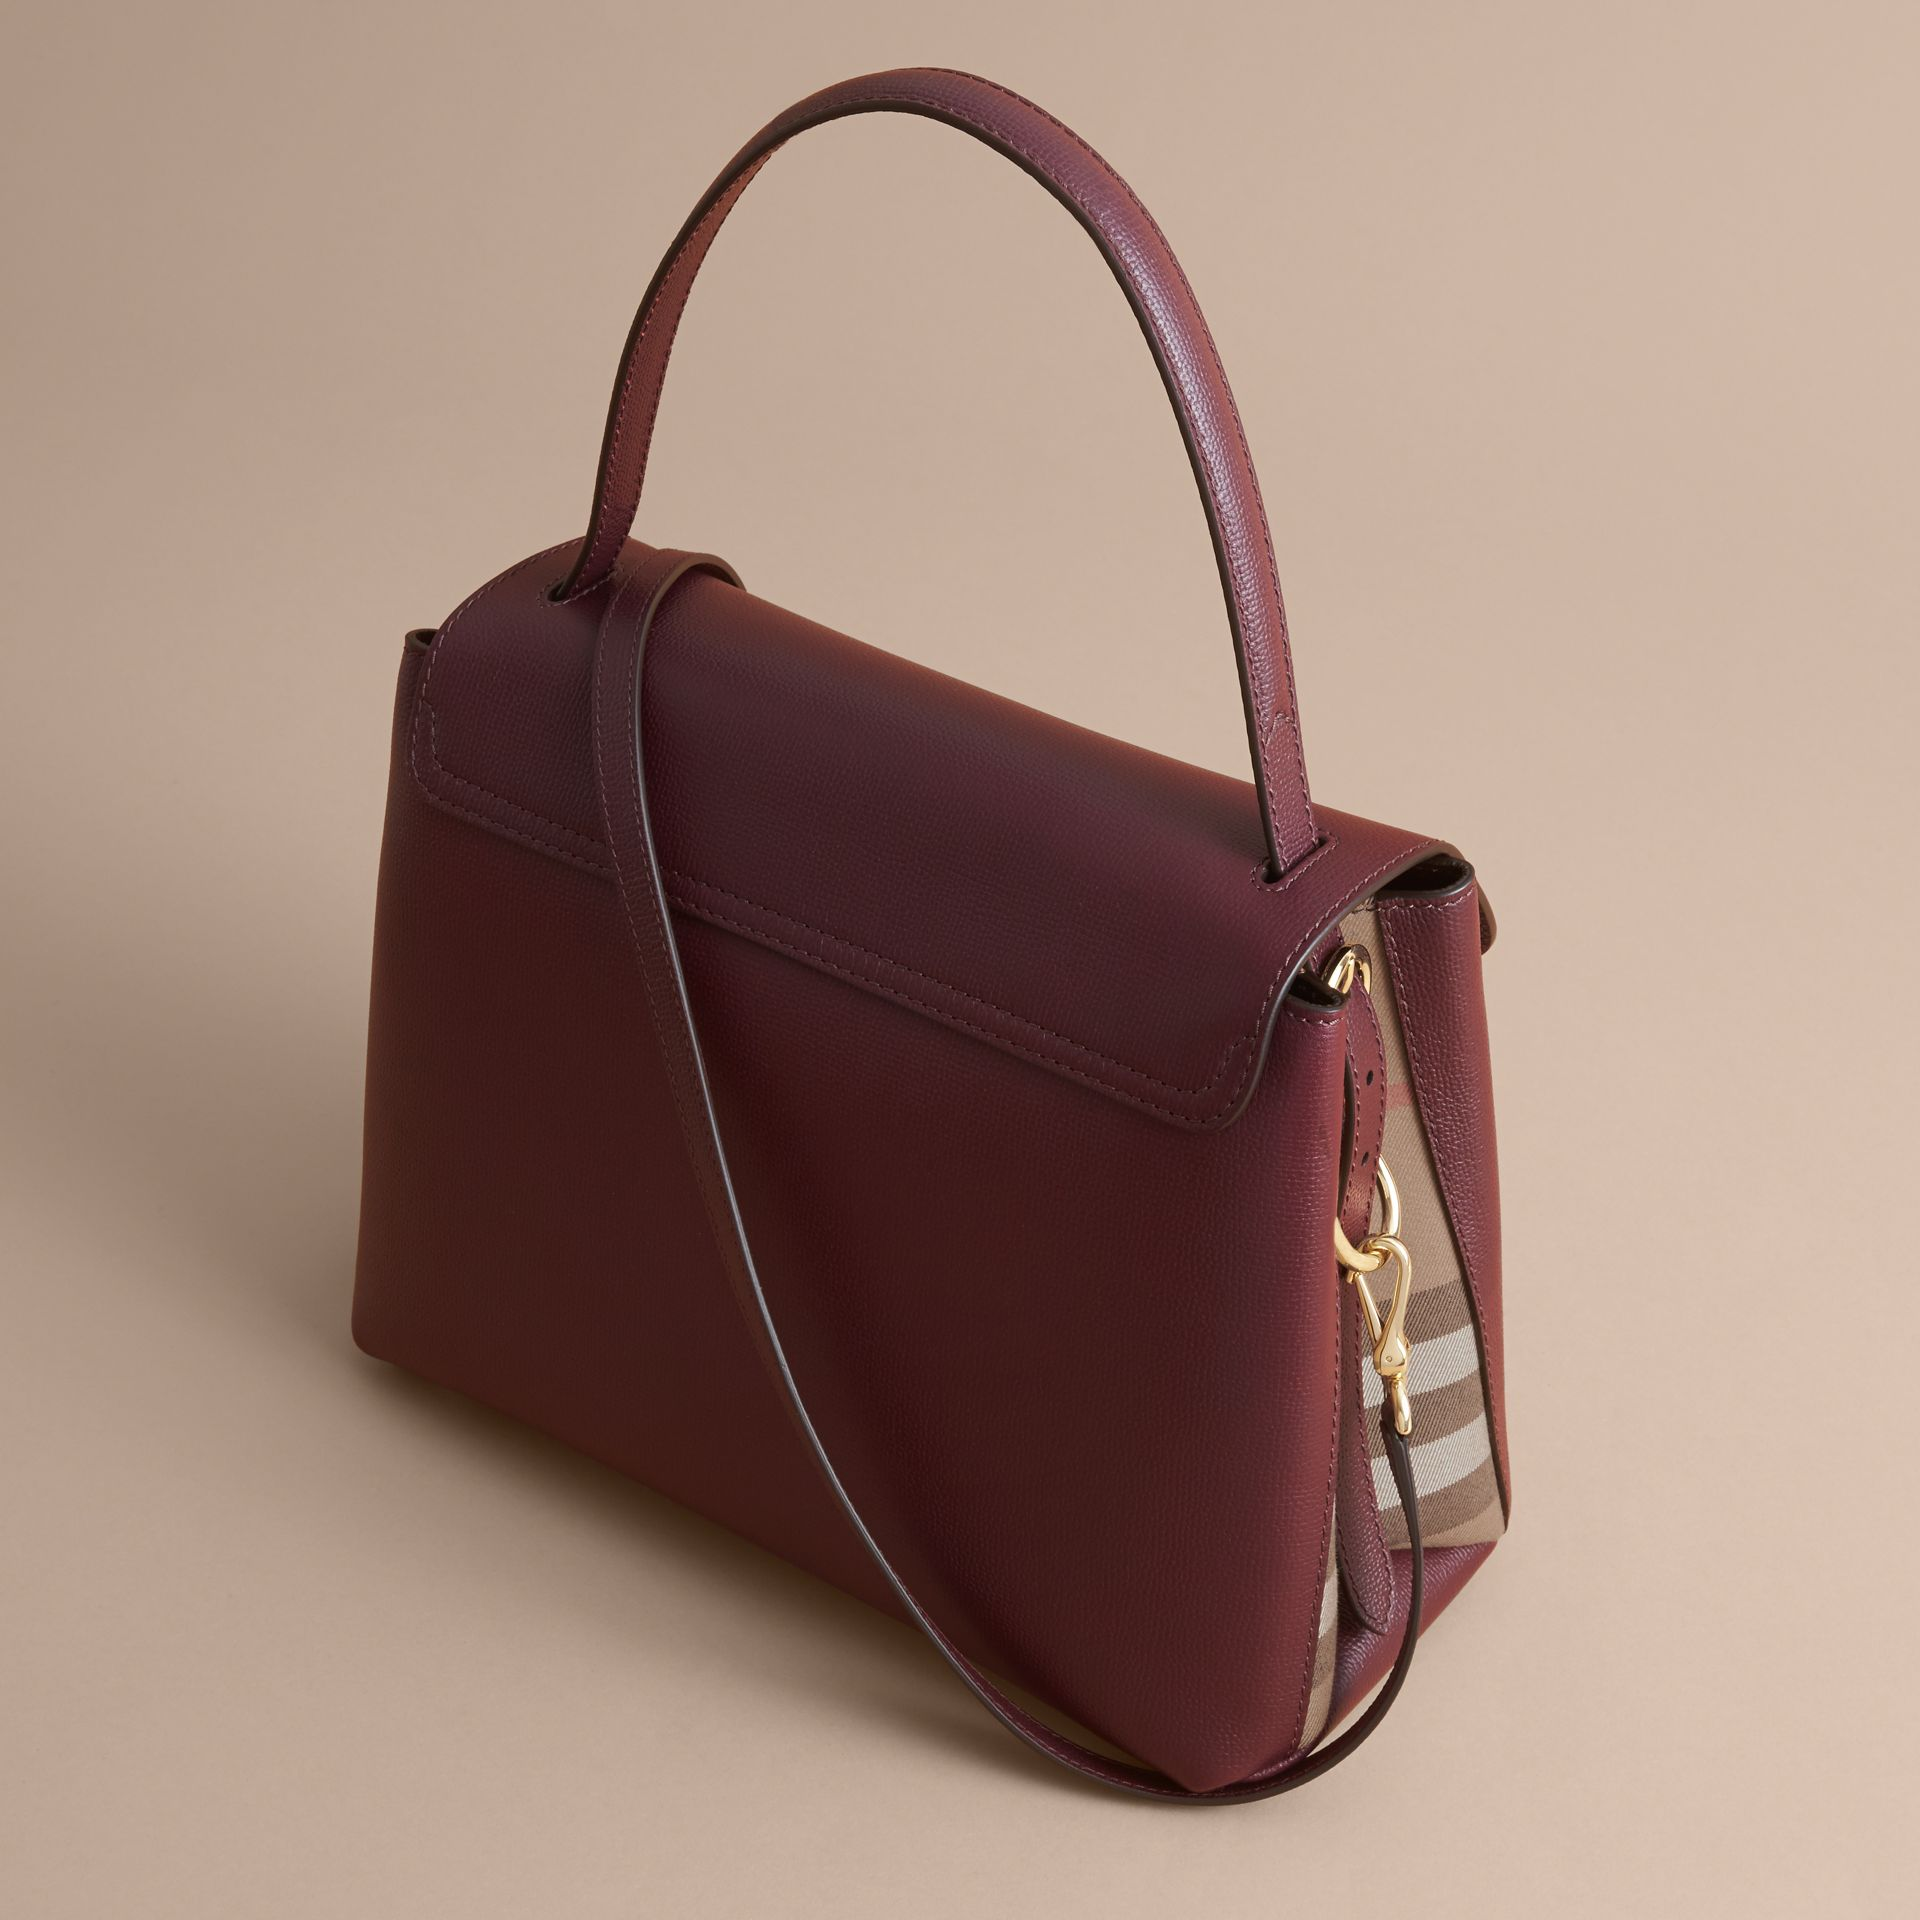 Medium Grainy Leather and House Check Tote Bag in Mahogany Red - Women | Burberry - gallery image 4